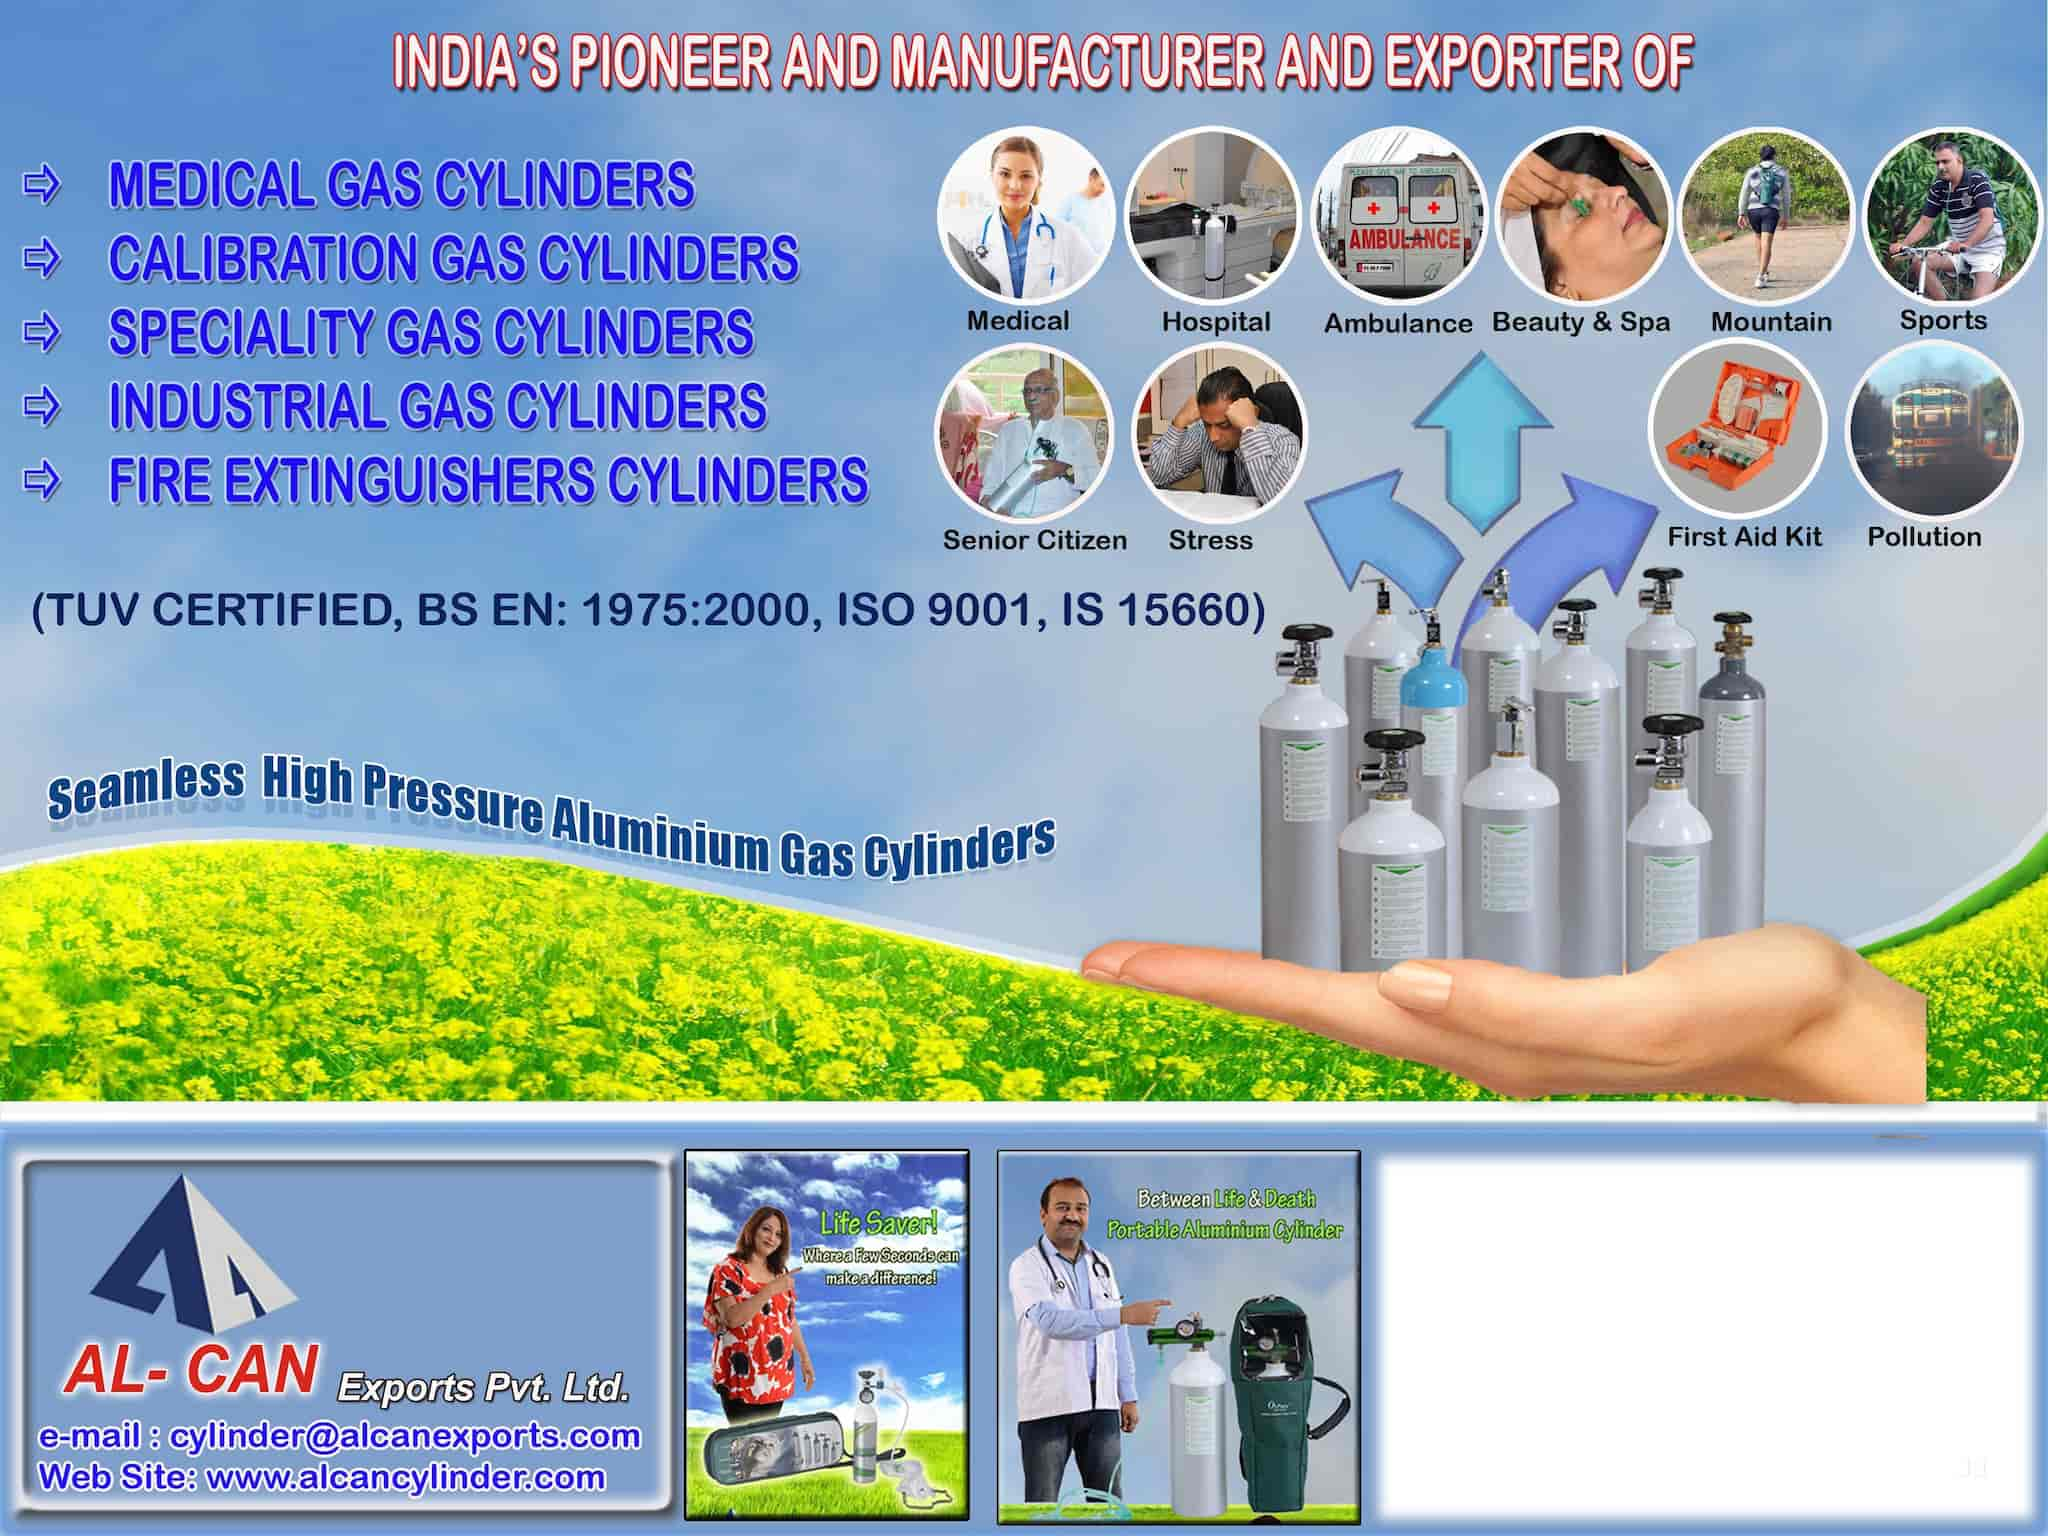 Al Can Exports Pvt Ltd, Bhayandar East - Fire Extinguisher